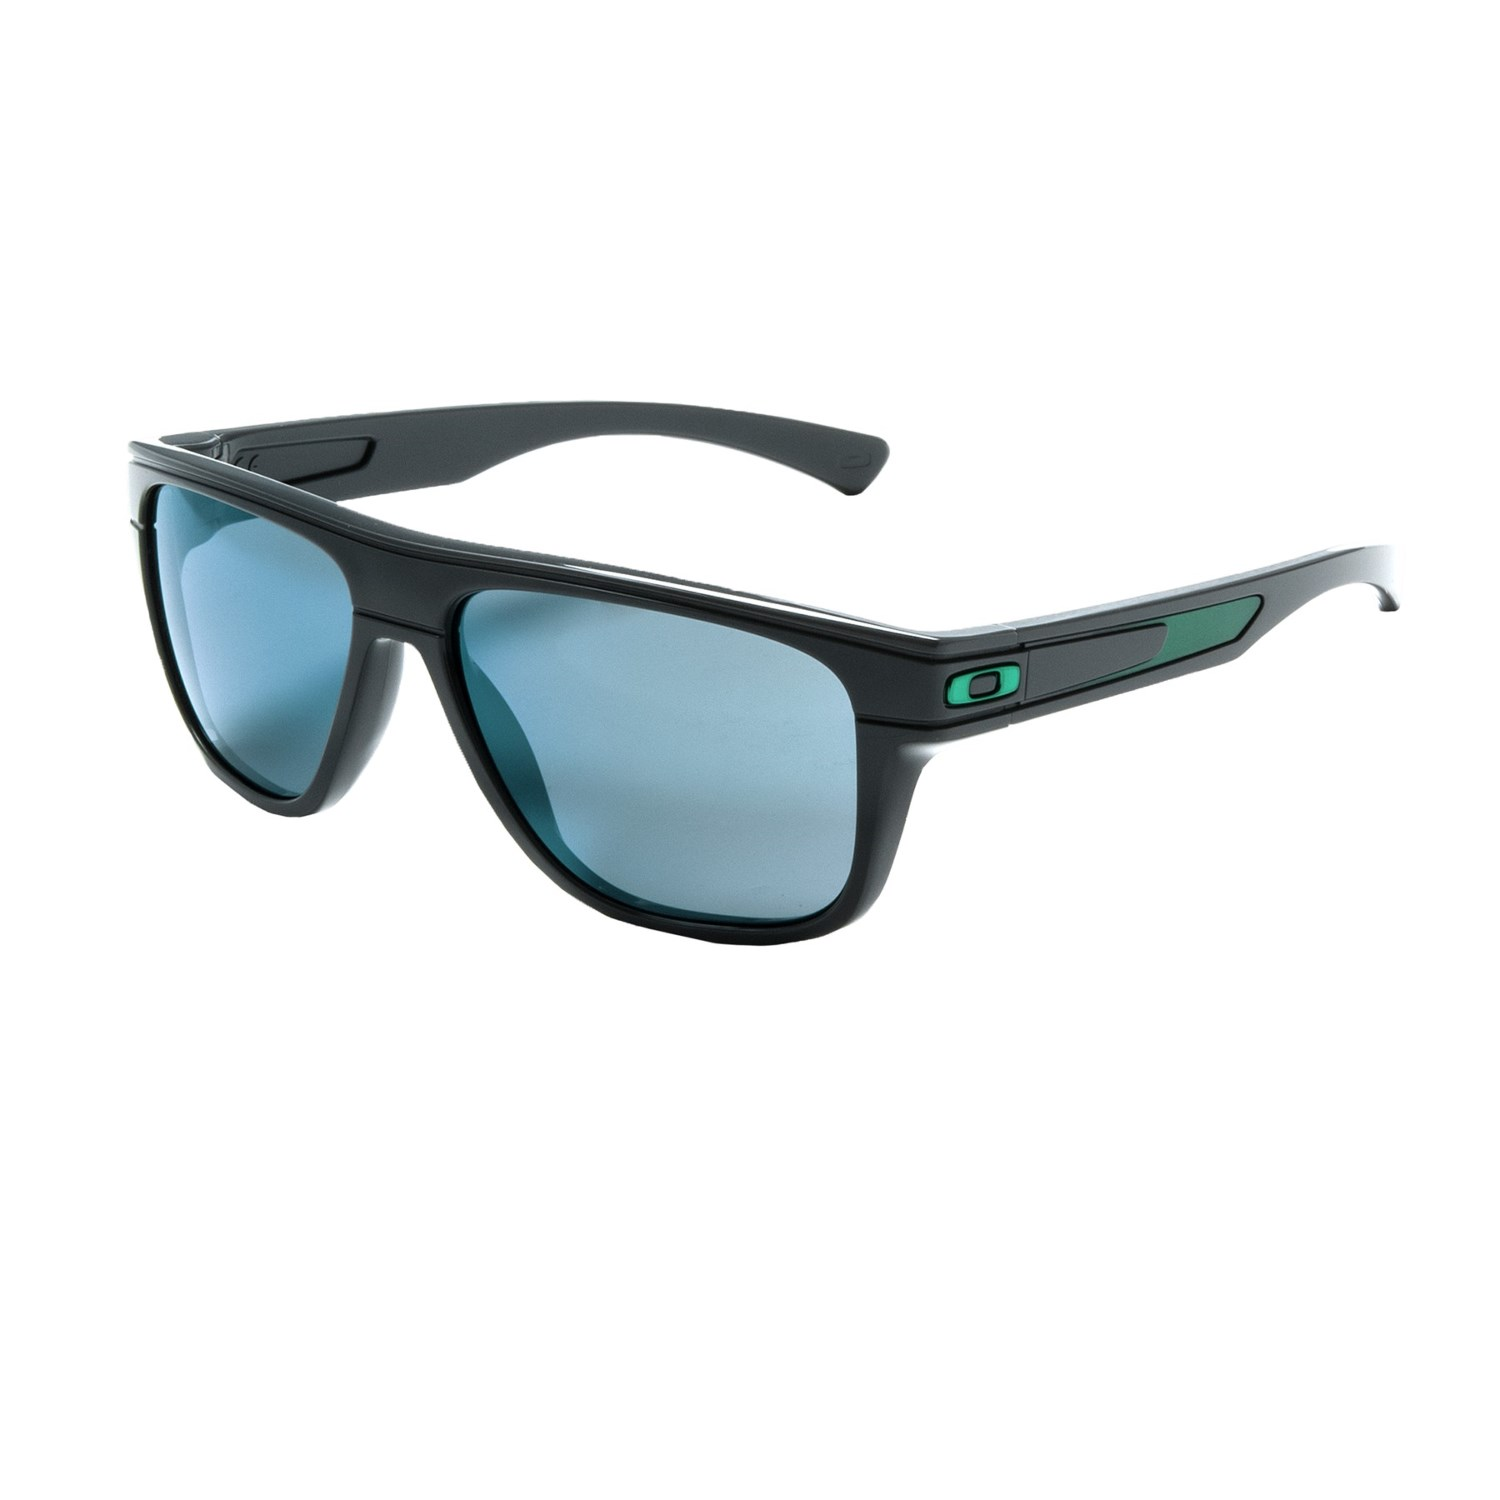 a2831e425d Oakley Prescription Online Store « One More Soul